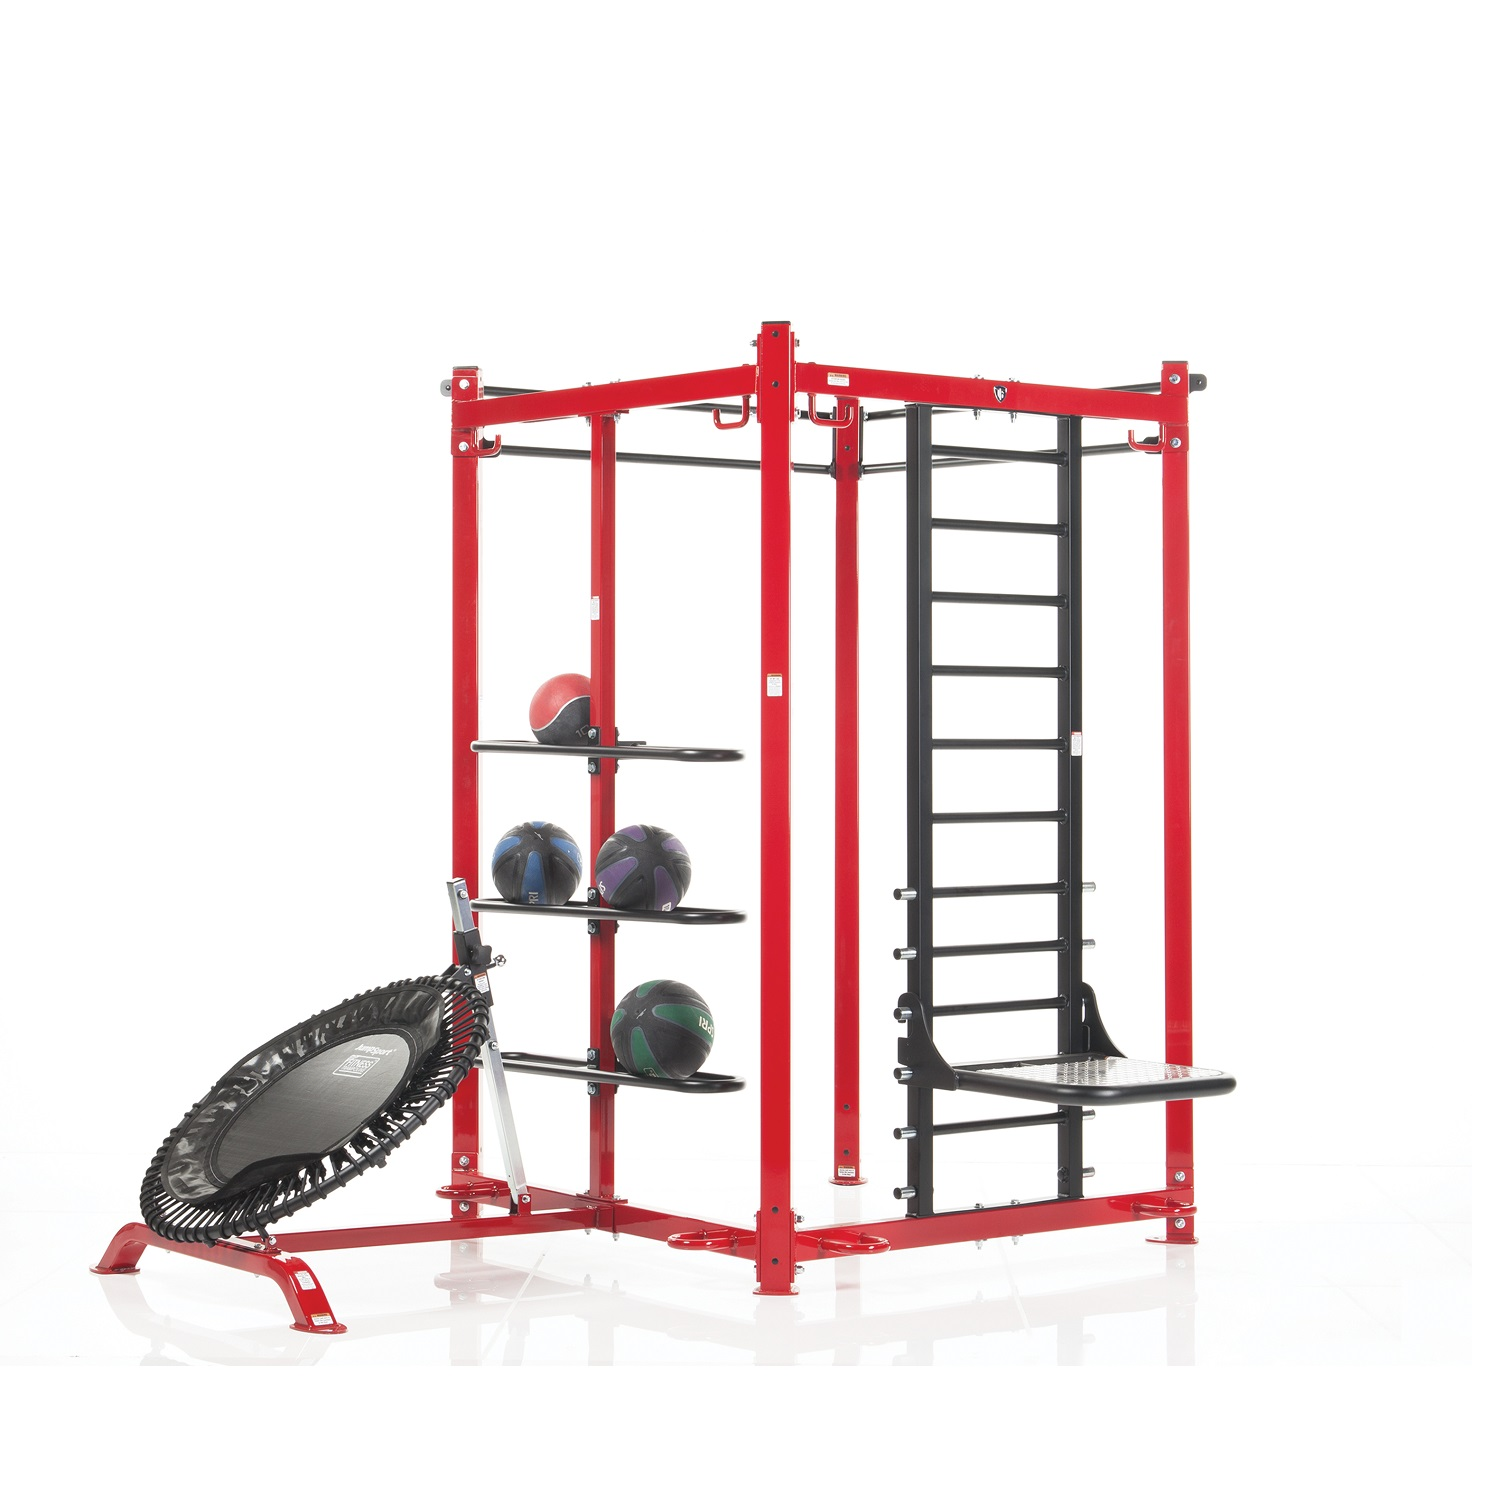 CT-4000 - CT4 Pod Fitness Trainer